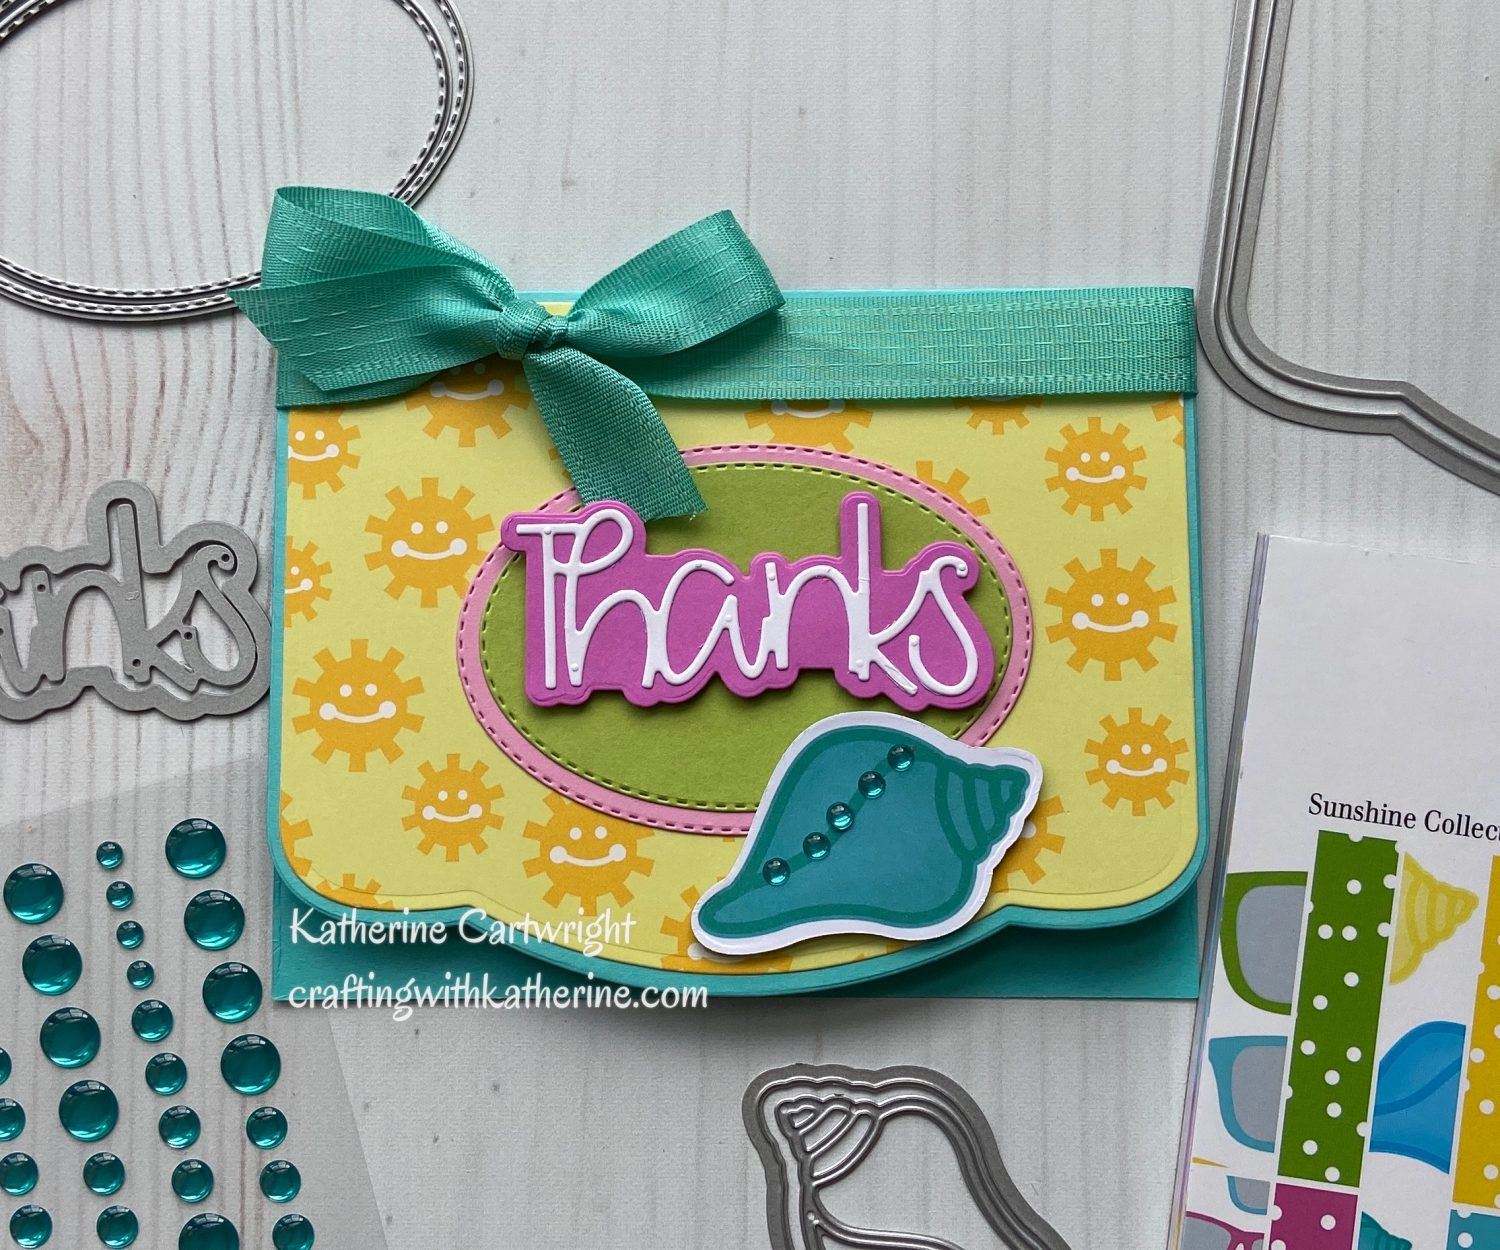 You are currently viewing Handmade Card and Video: Thanks Elegant Edge Card